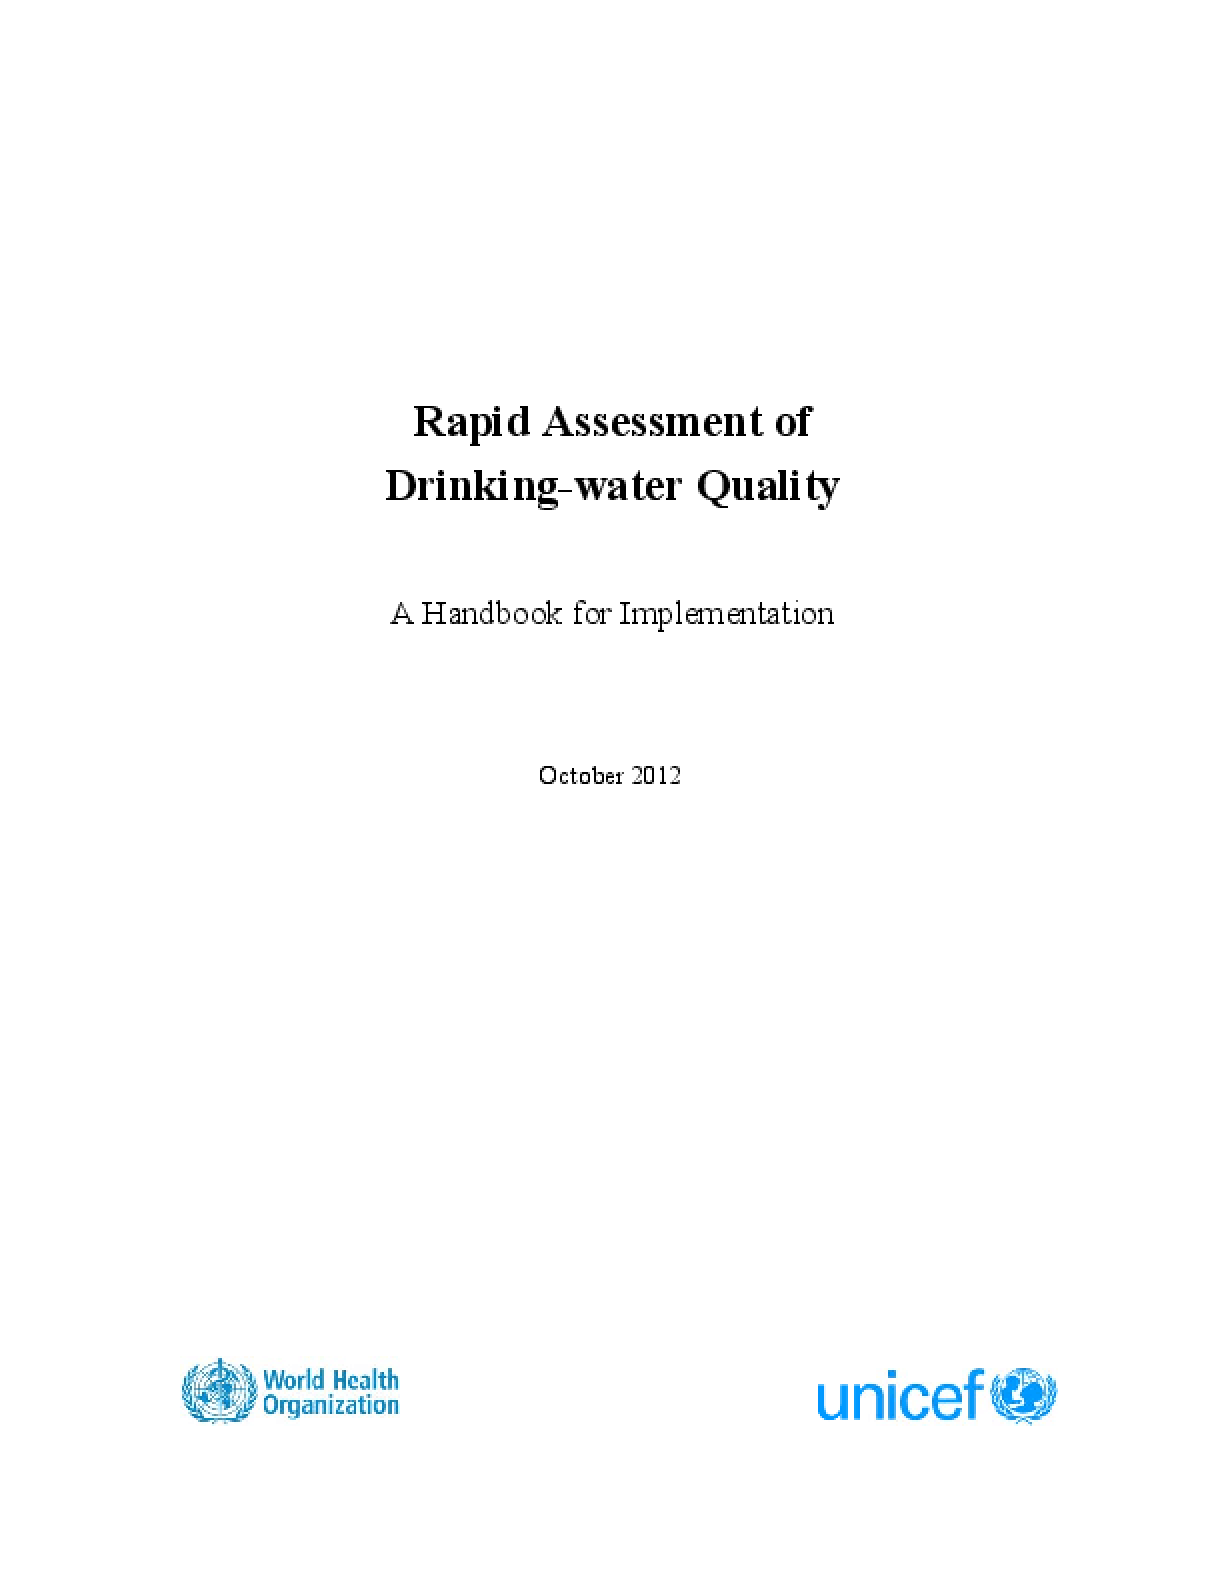 Rapid Assessment of Drinking-water Quality: A Handbook for Implementation